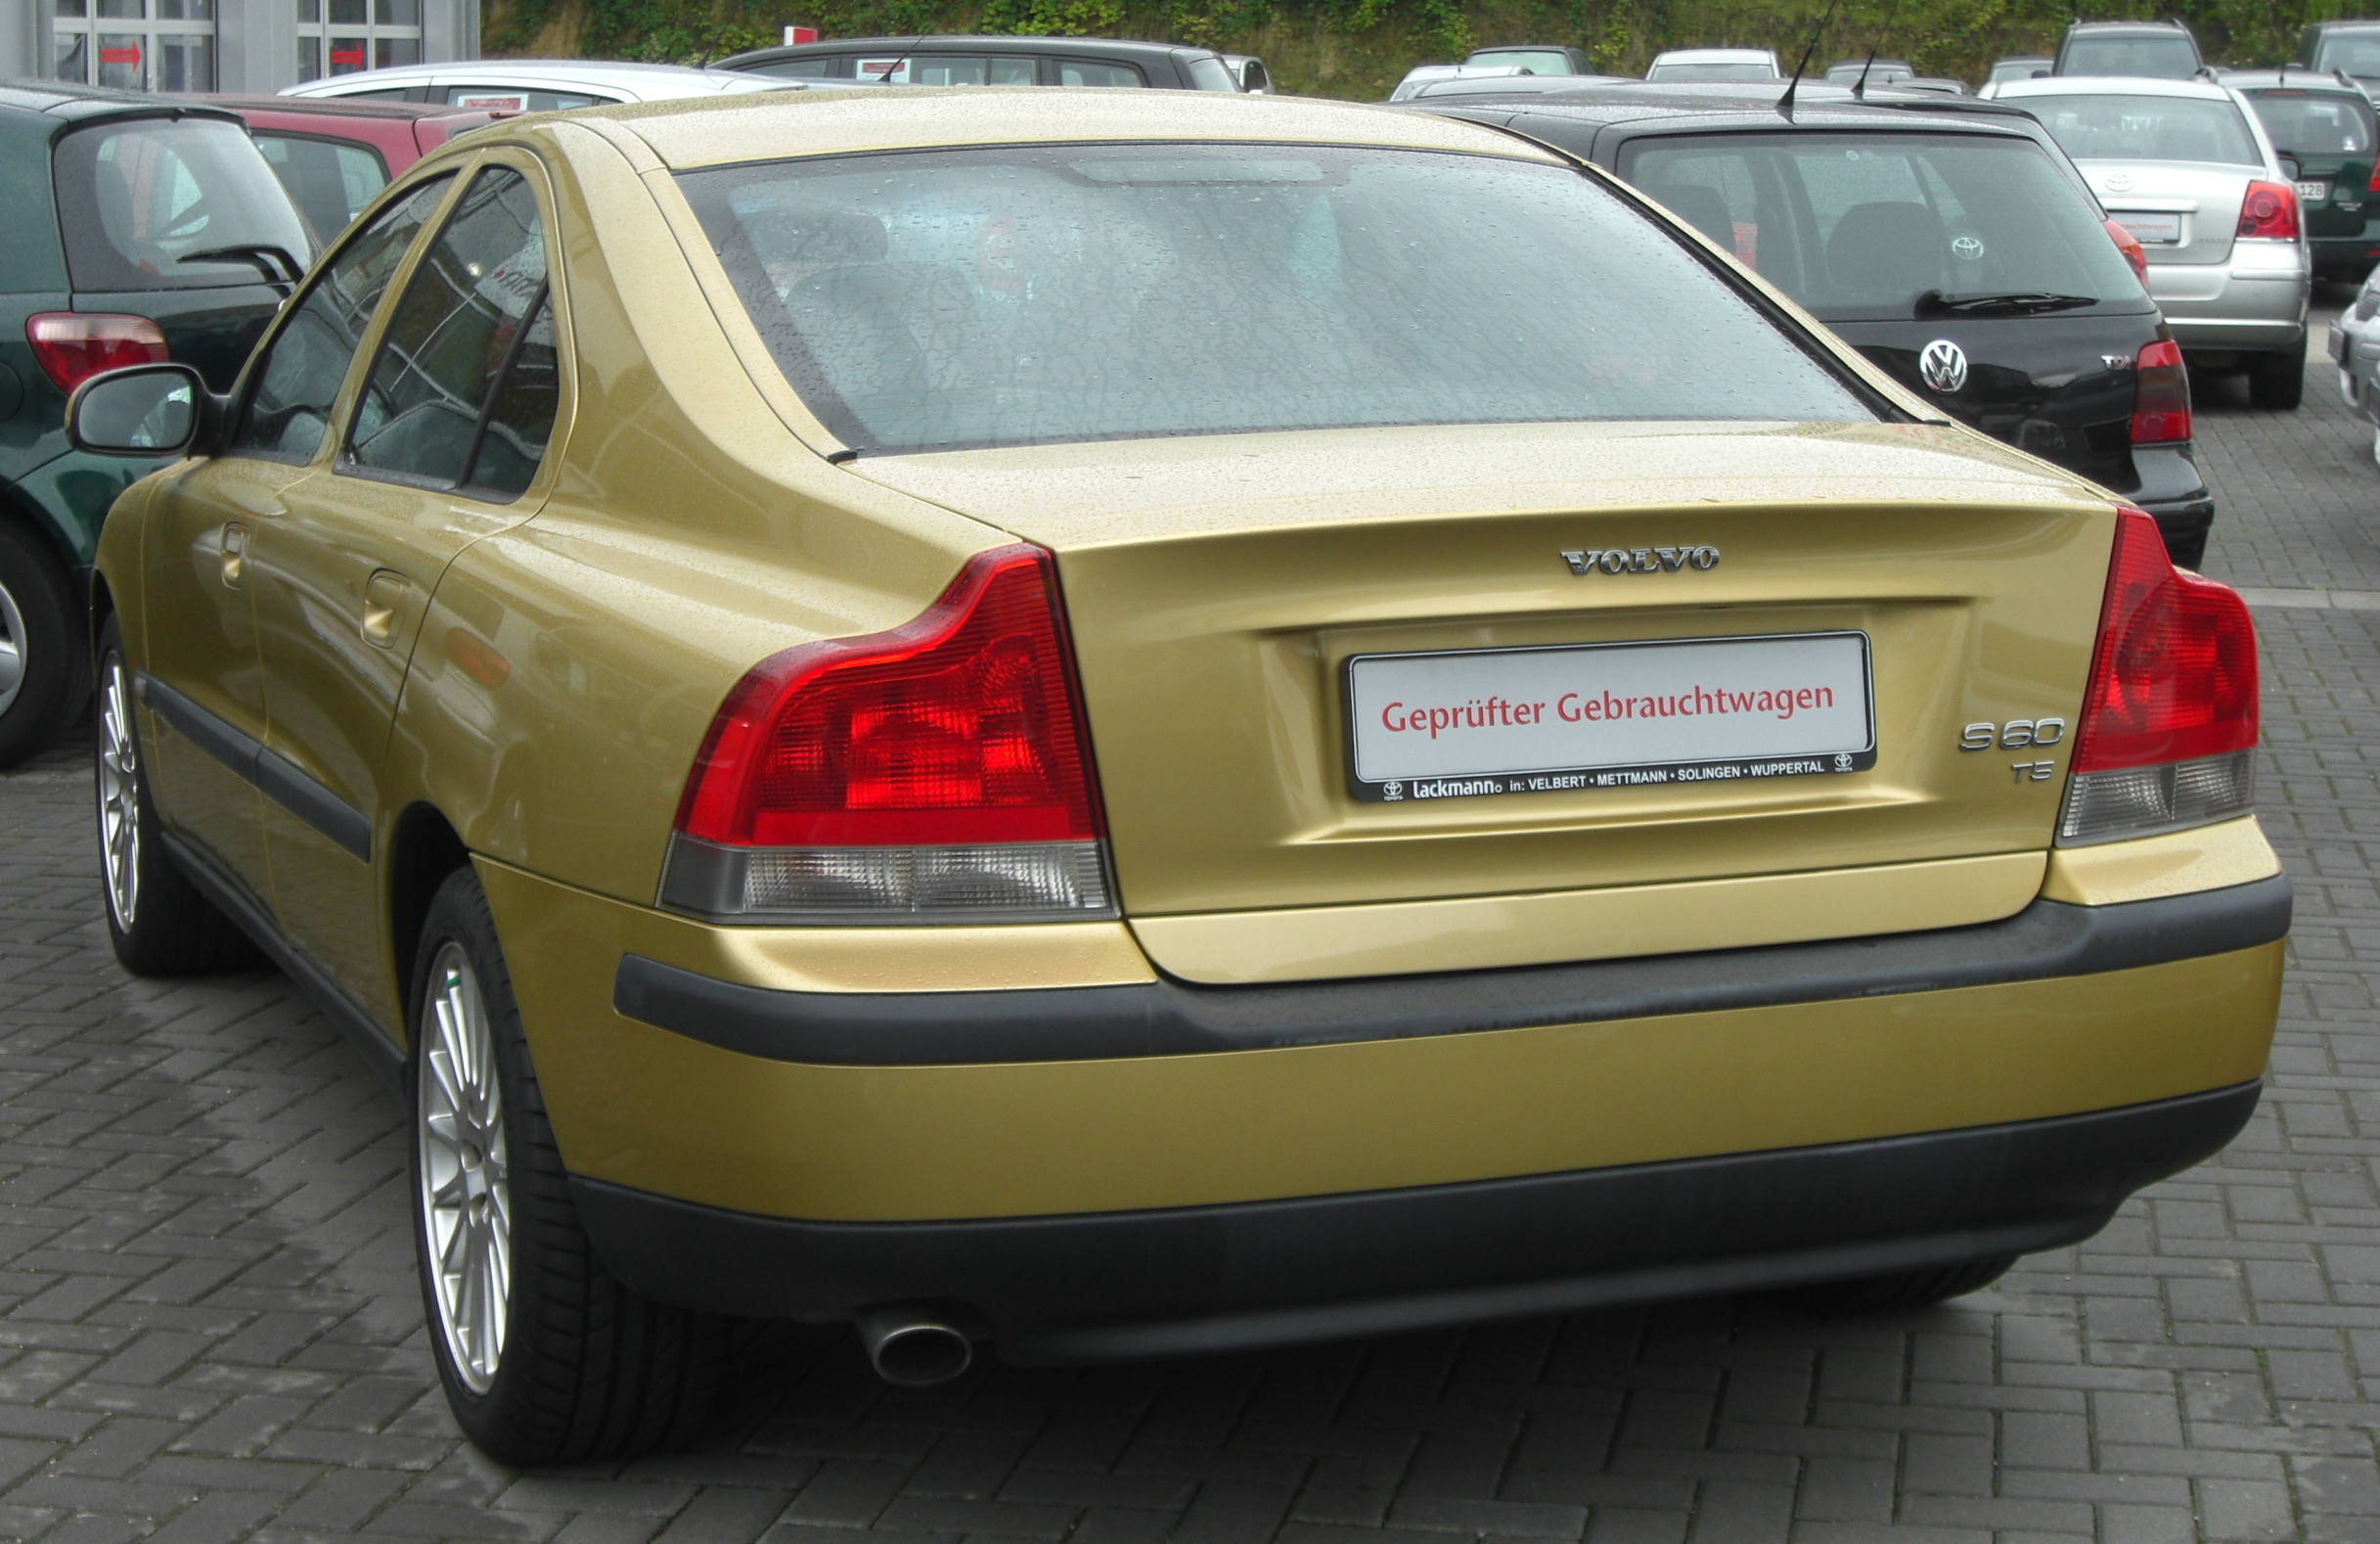 File:Volvo S60 T5 Vorfacelift rear.JPG - Wikimedia Commons